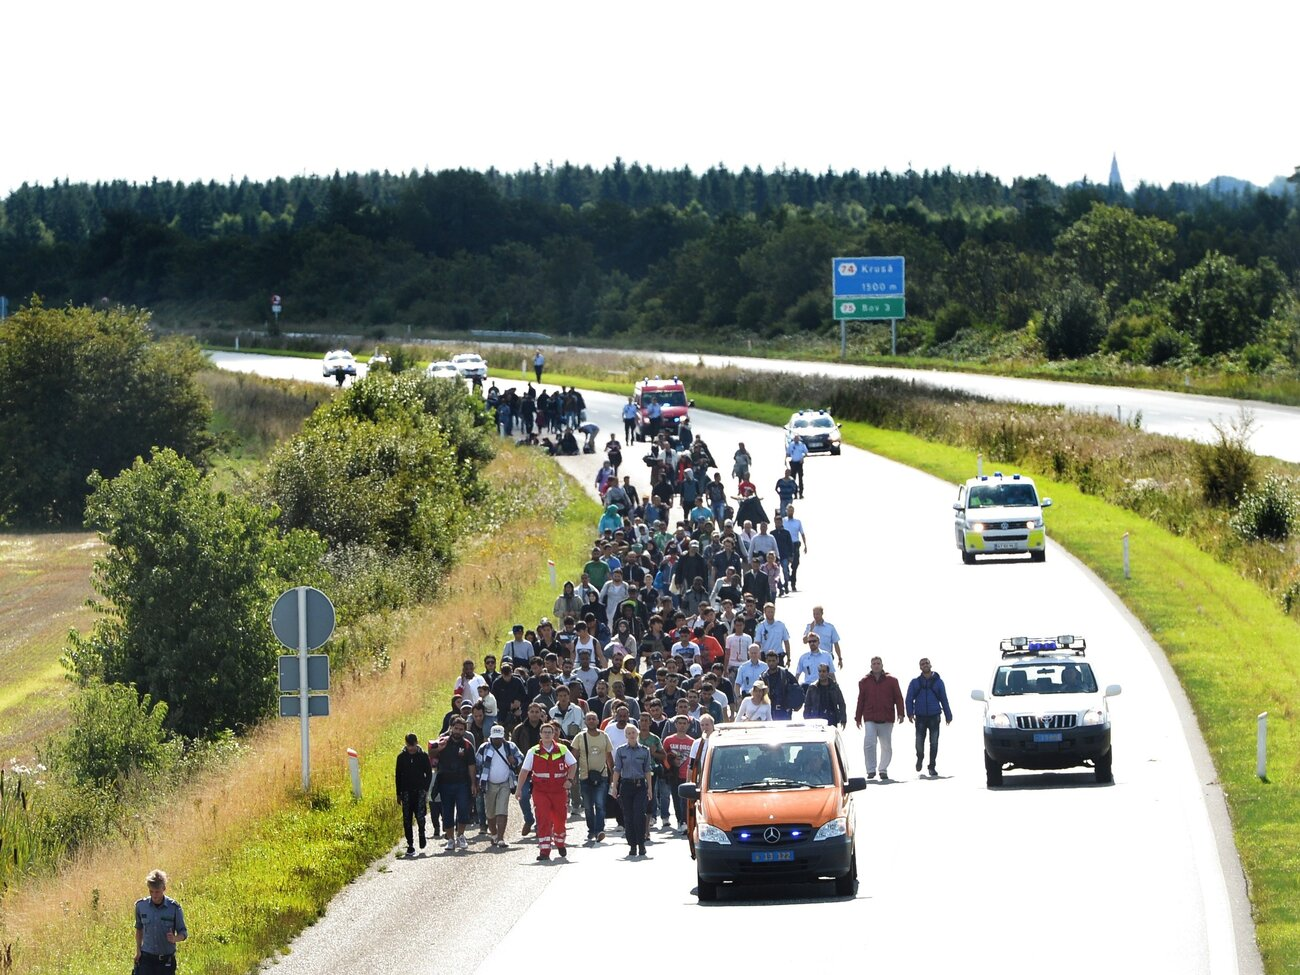 Migrants, mostly from Syria and Iraq, set out on foot along a highway on the Danish-German border, heading north to Sweden on Sept. 9. The migrants arrived that morning on a train from Germany.